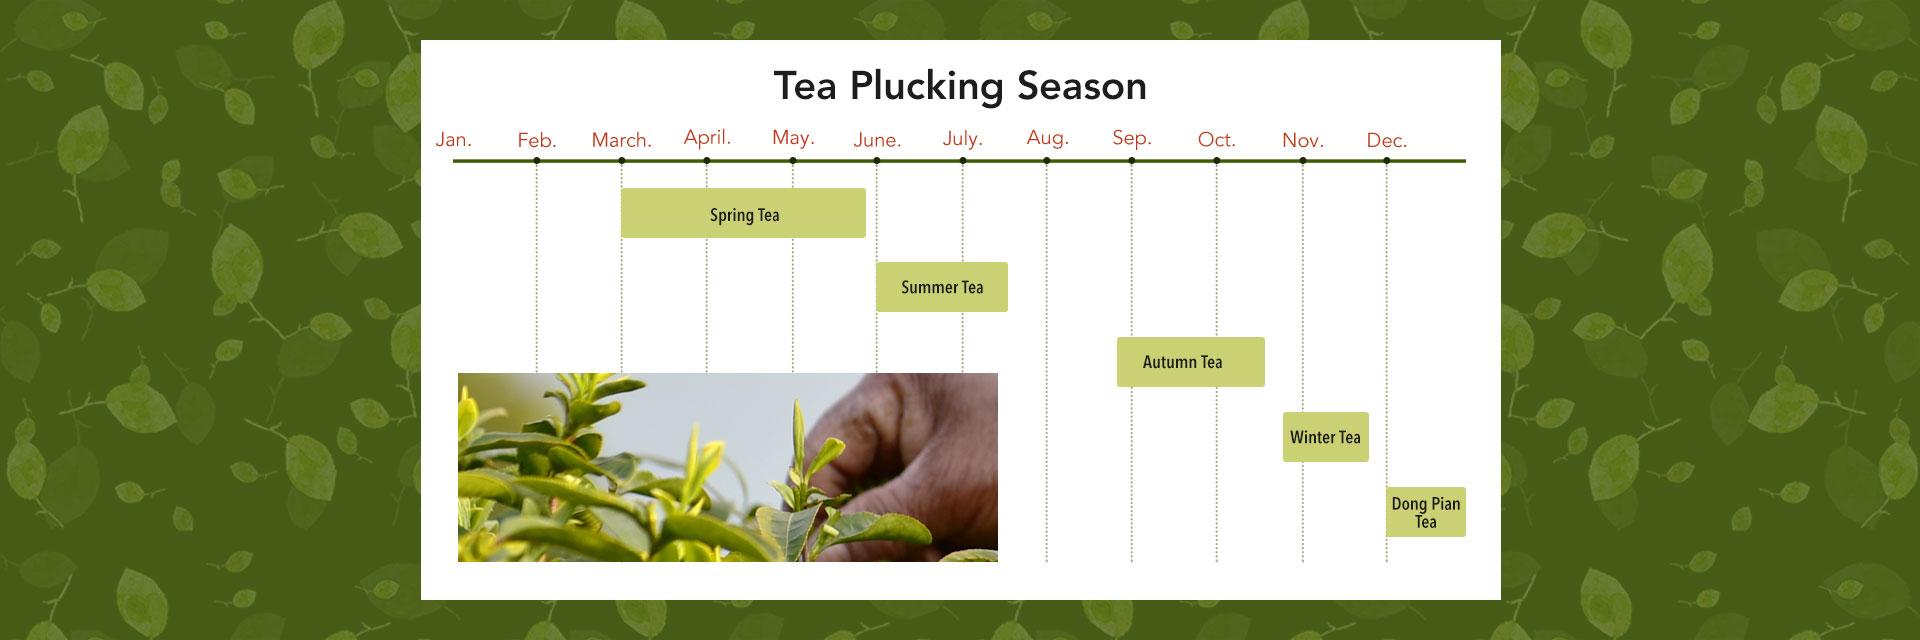 Tea Plucking Seasons